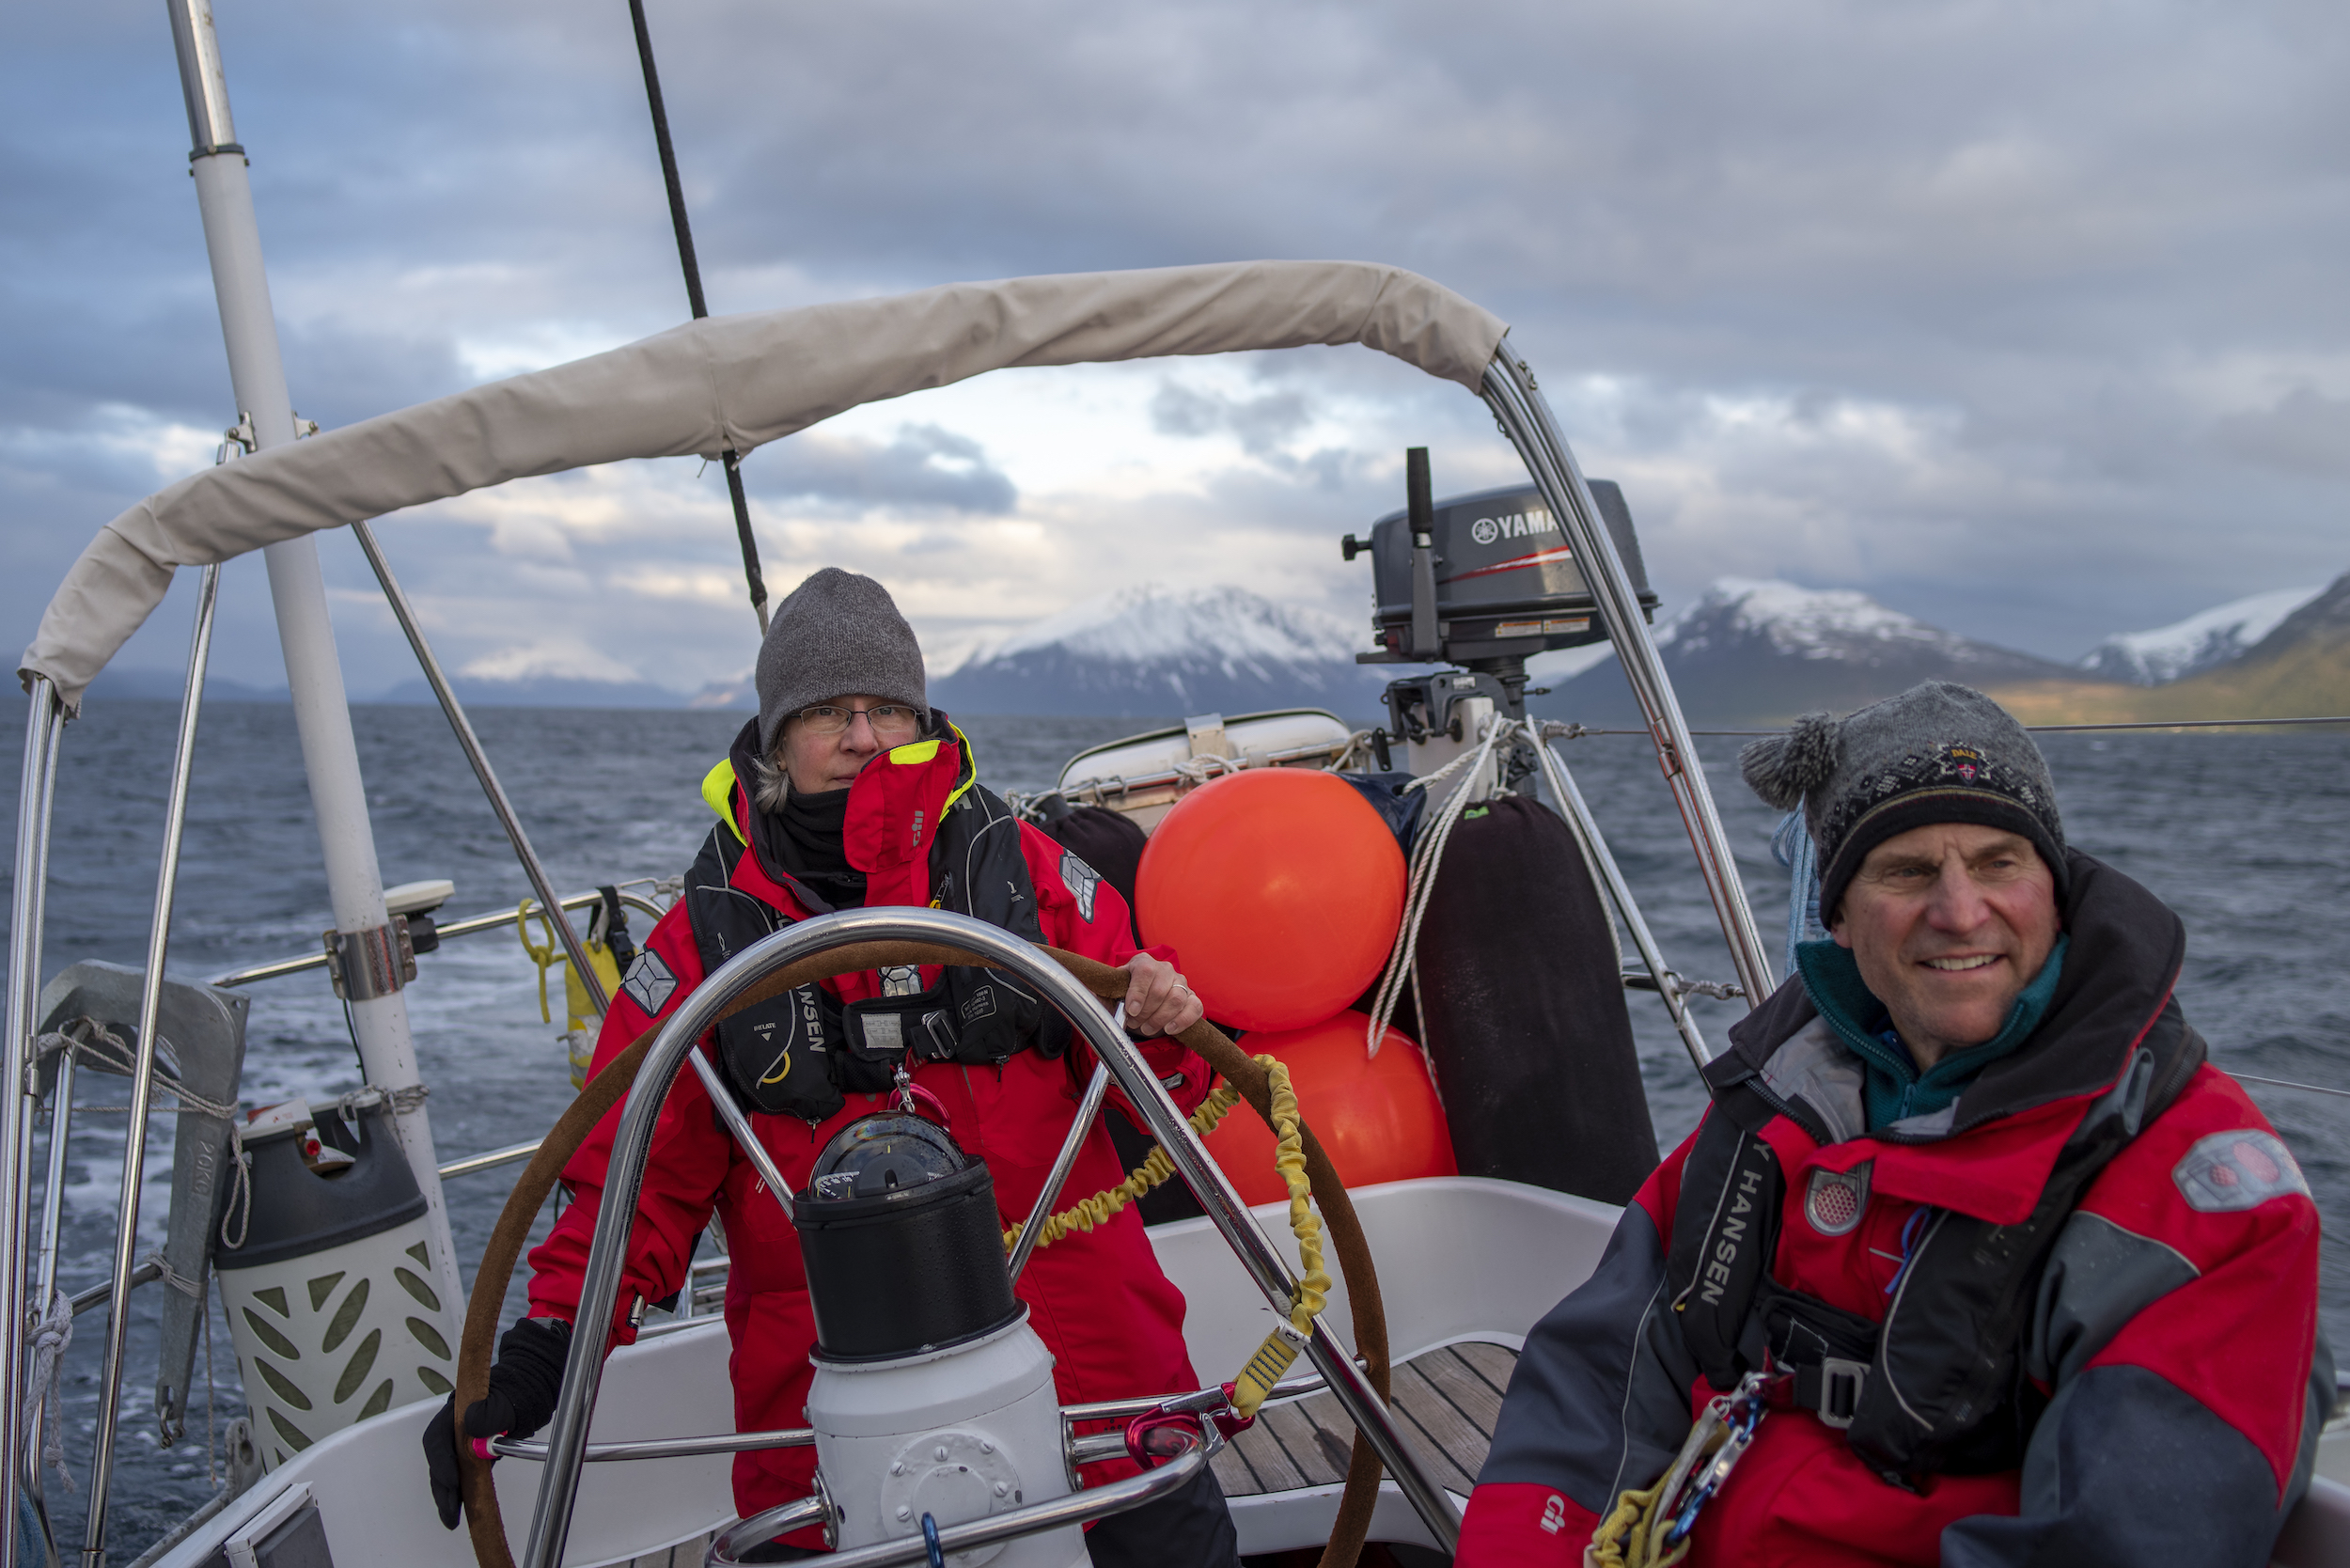 Patty & her husband Dave pilot Isbjorn in the midnight sun through the last of Norway's mainland fjords on the way offshore & NORTH. Dave sailed with us in 2016 to St. John's Newfoundland.